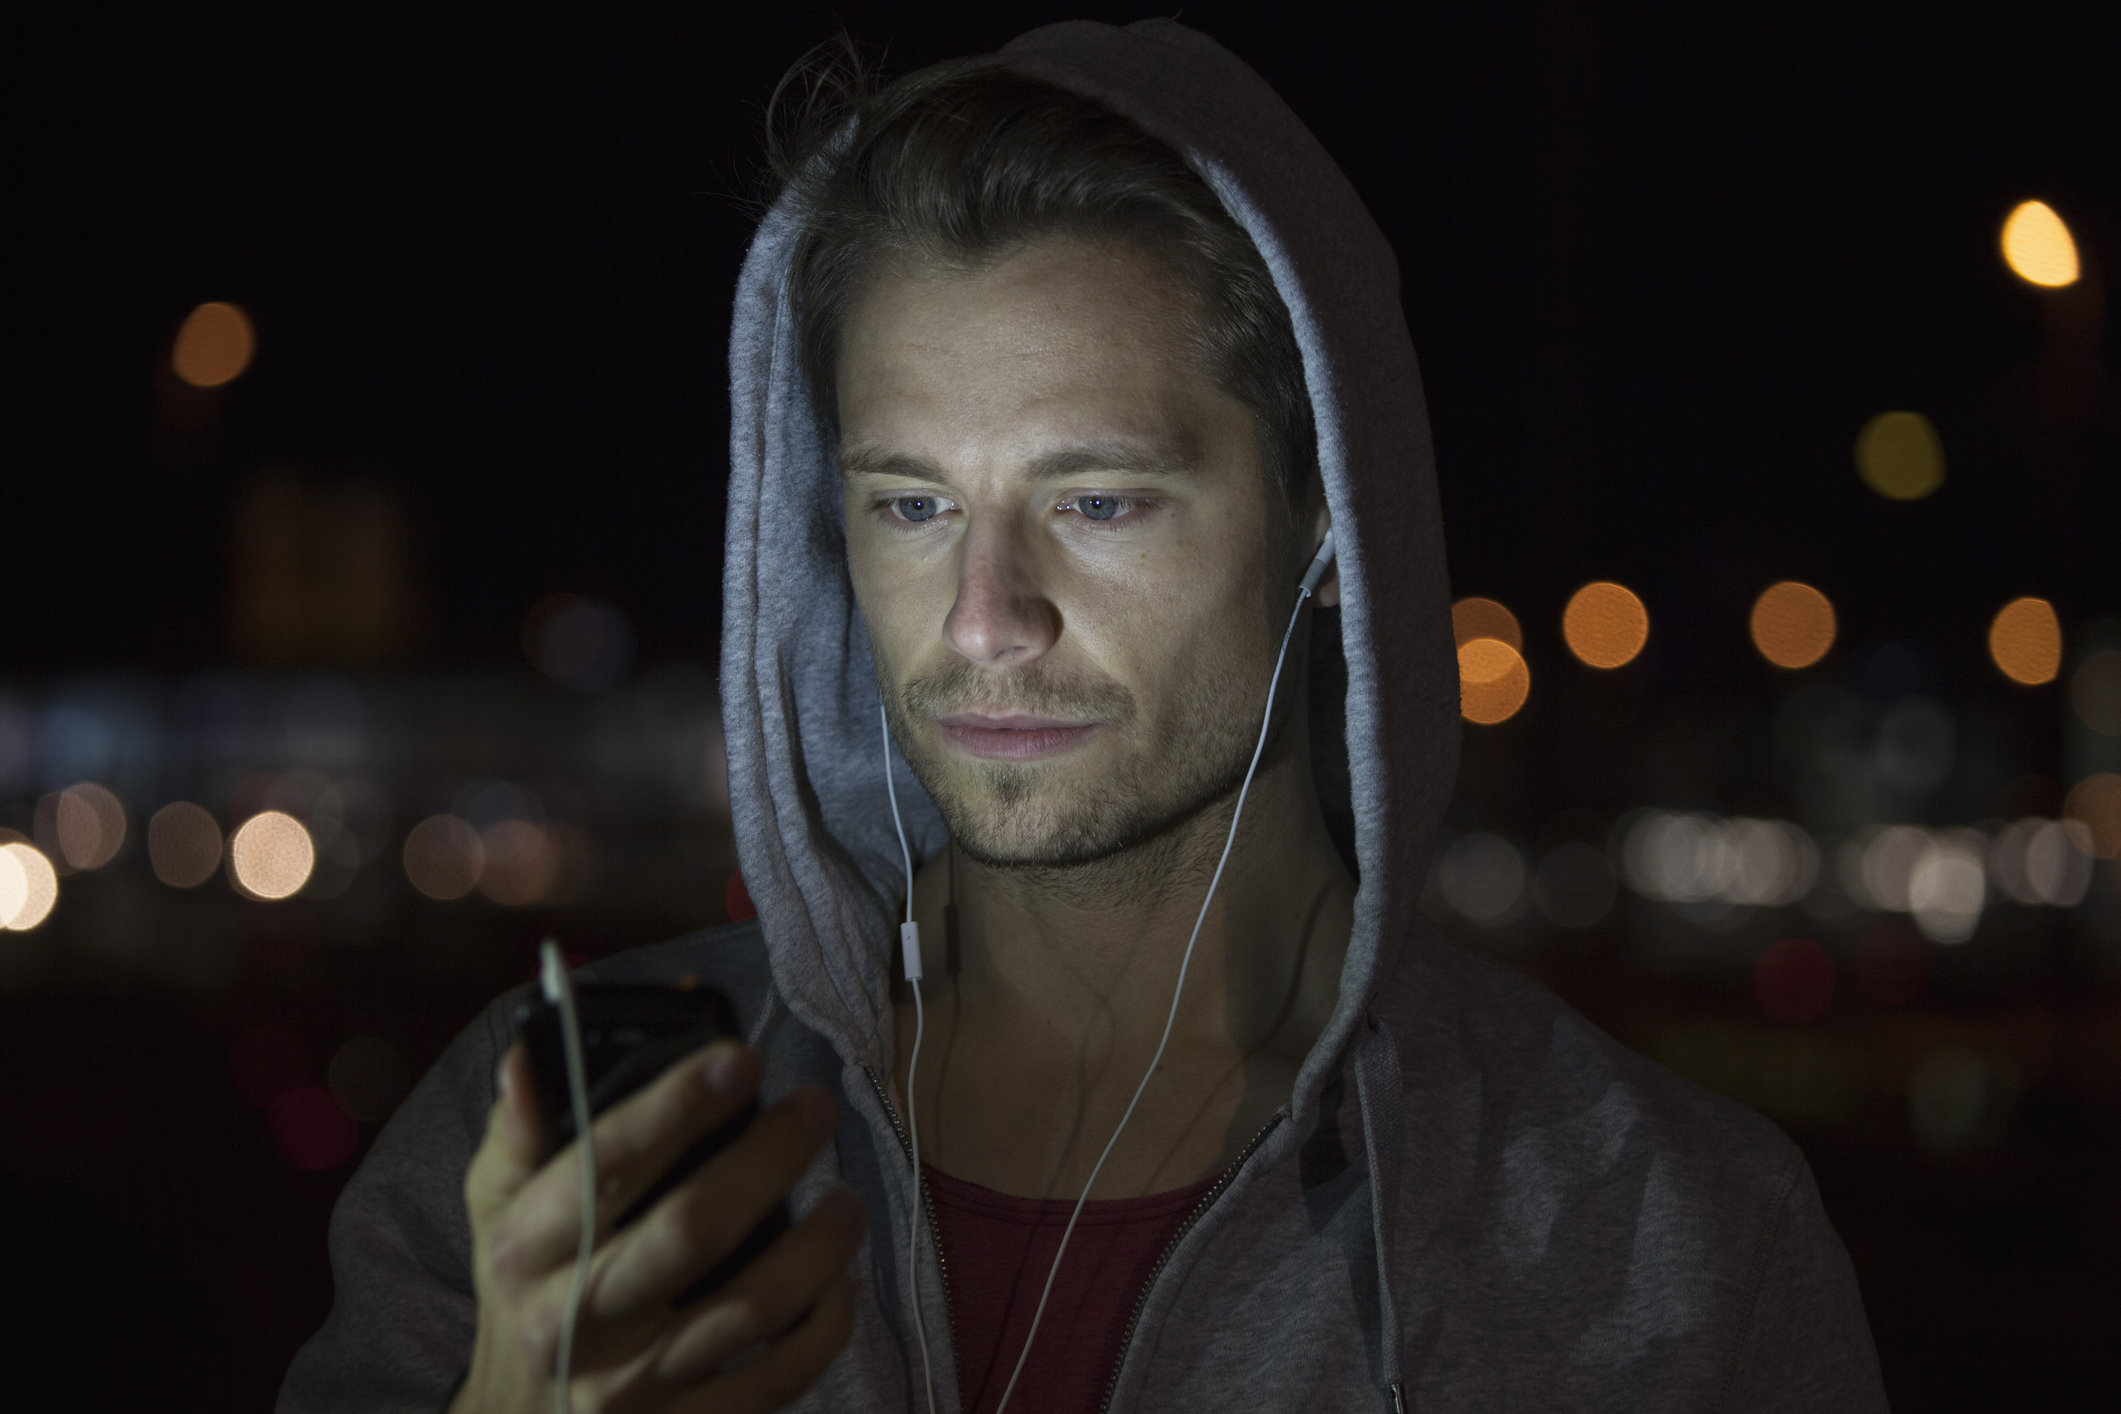 Portrait of young man wearing hooded jacket listening music at night